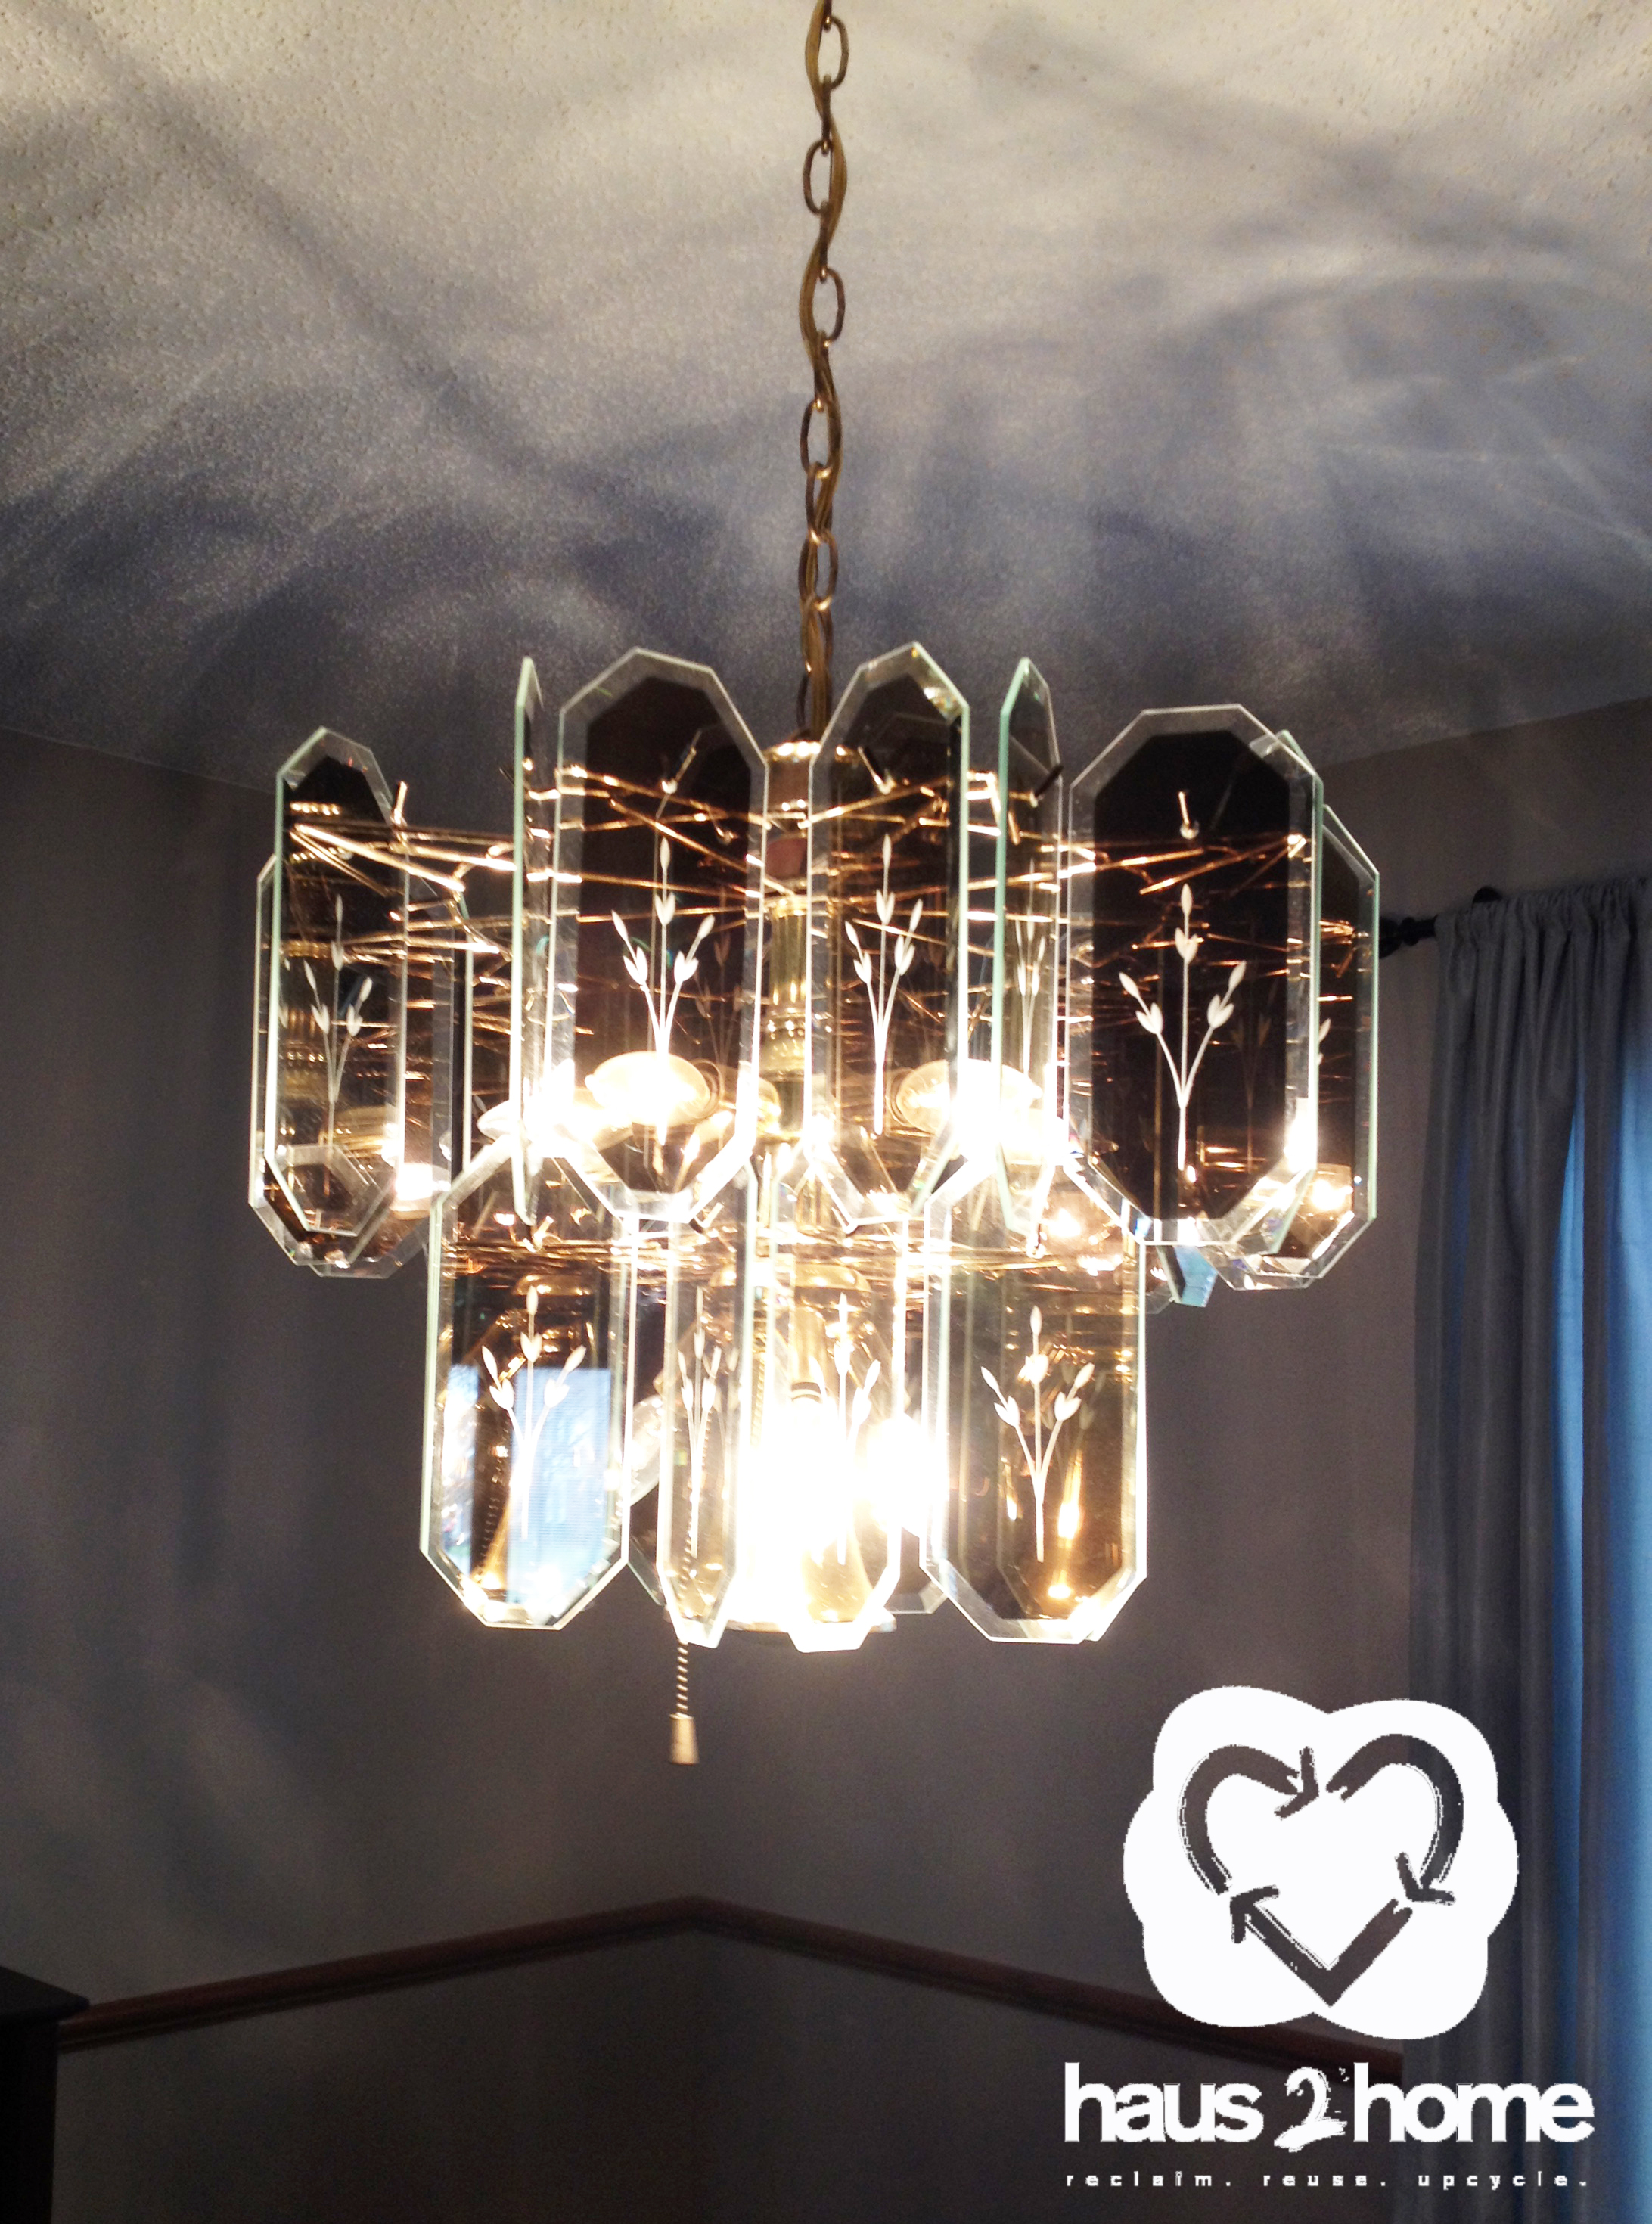 Upcycled Chandelier Haus2home